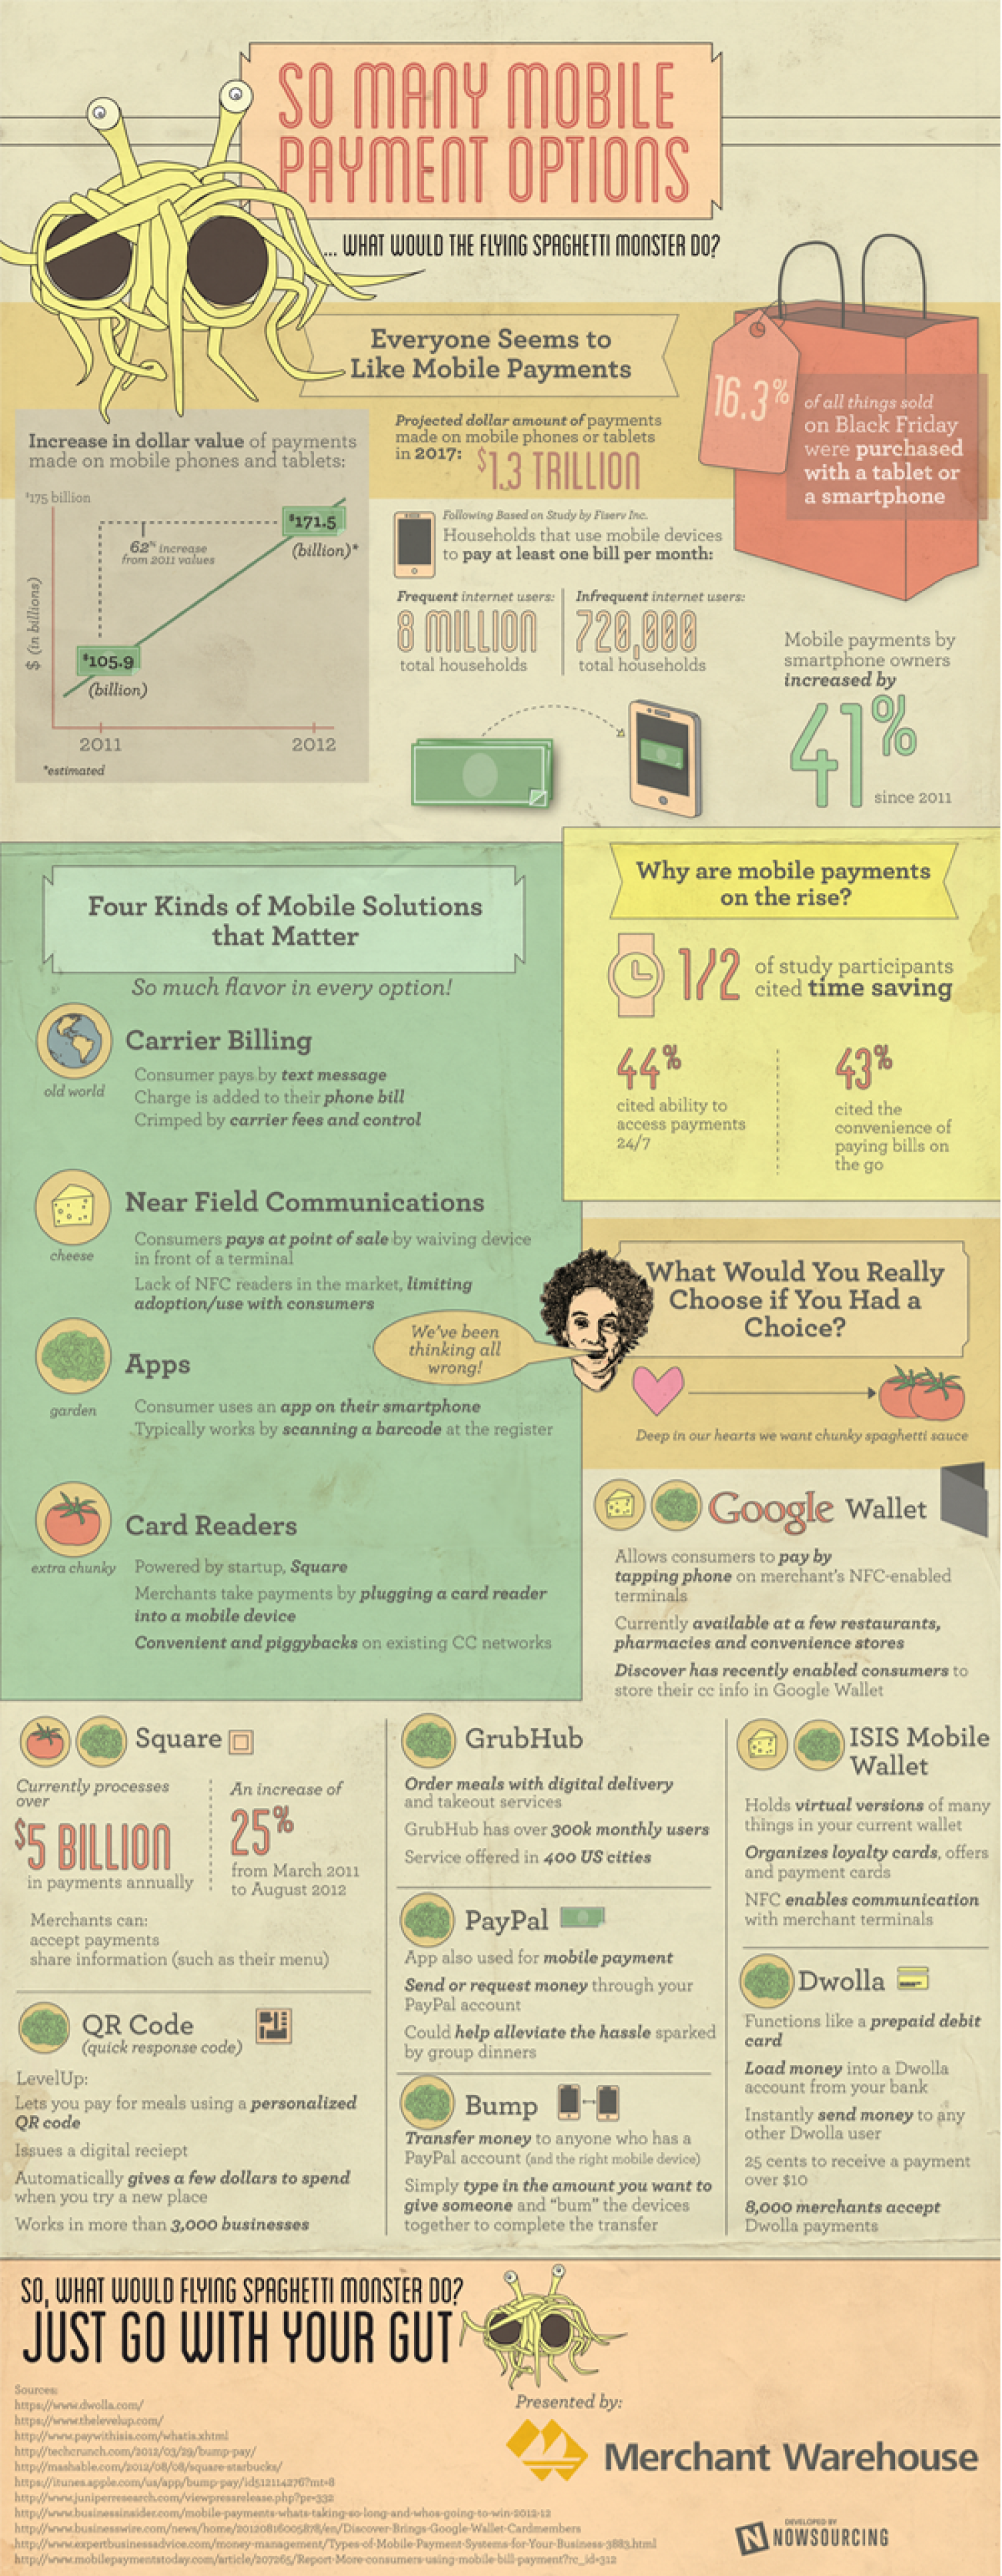 So Many Mobile Payment Options Infographic